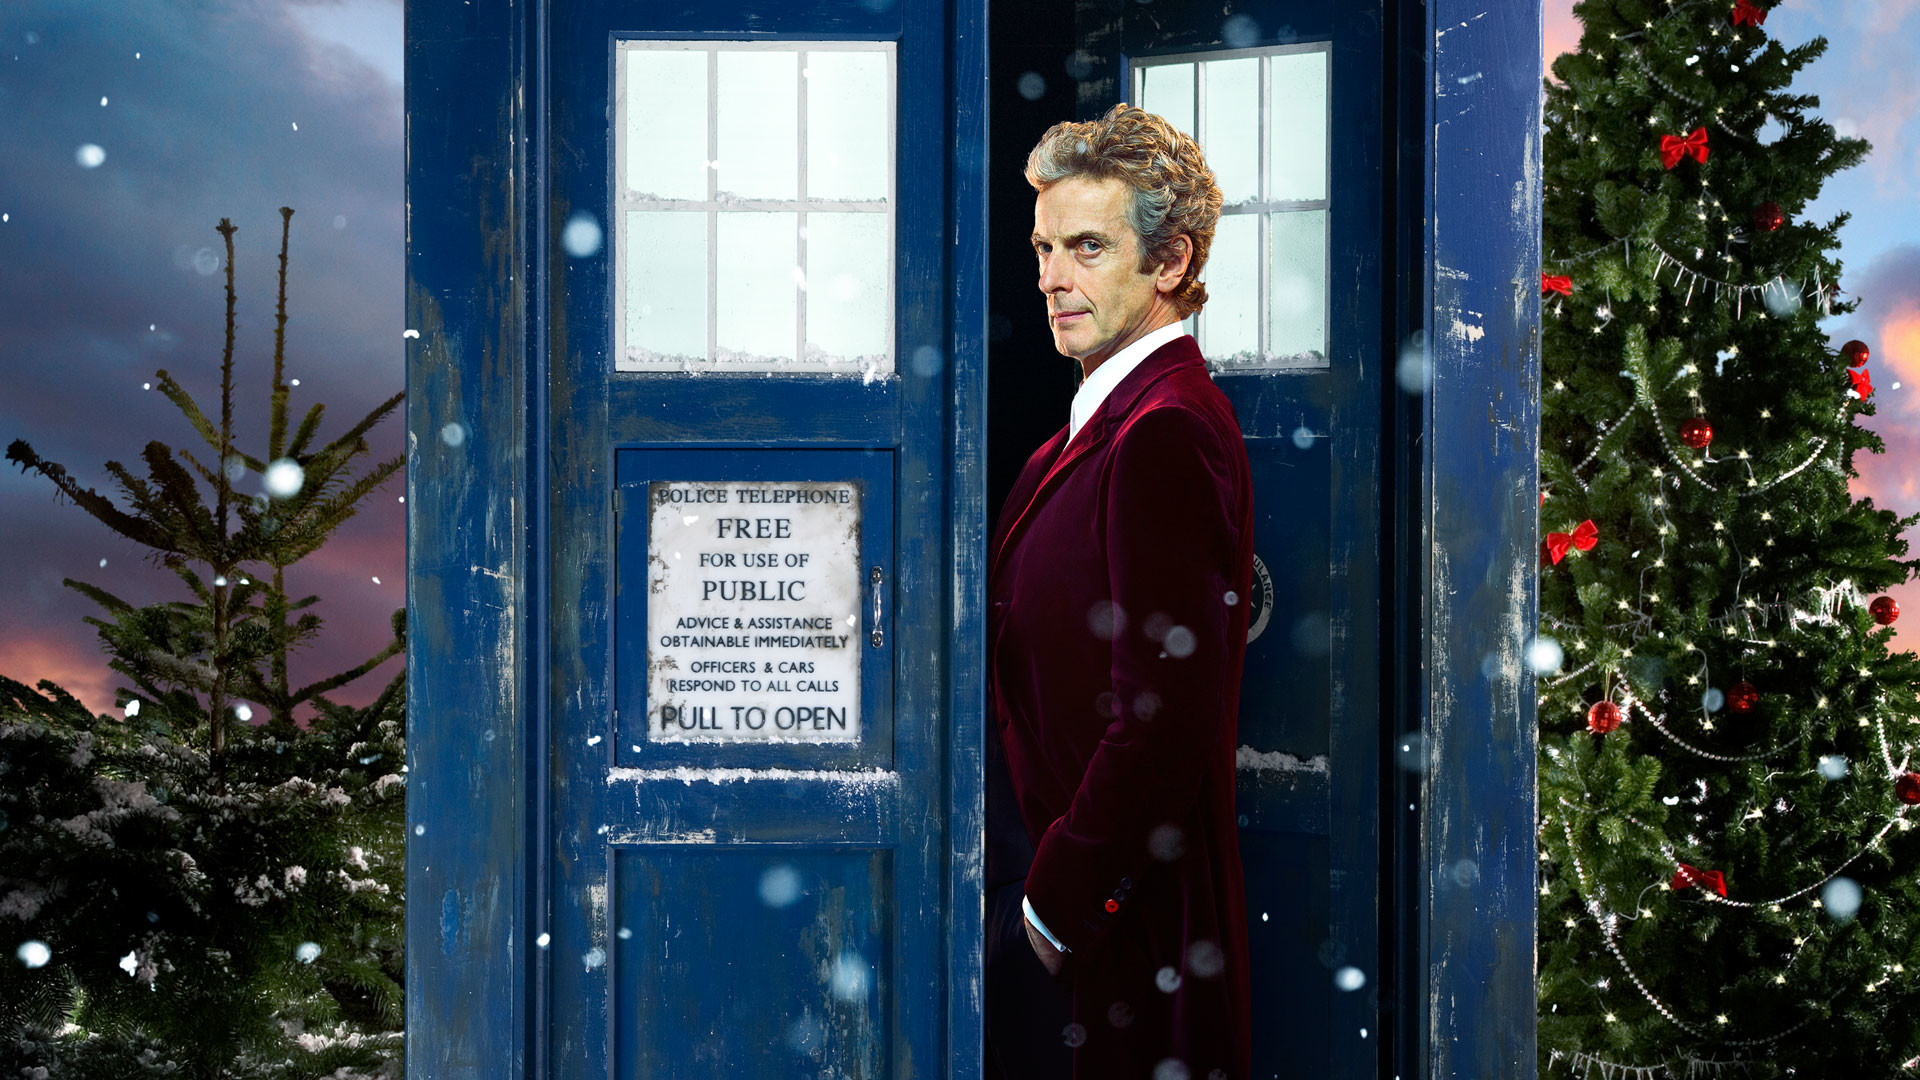 Arts/CraftsA Doctor Who Christmas Wallpaper featuring Peter Capaldi as the  Doctor, nice and early for your desktop!